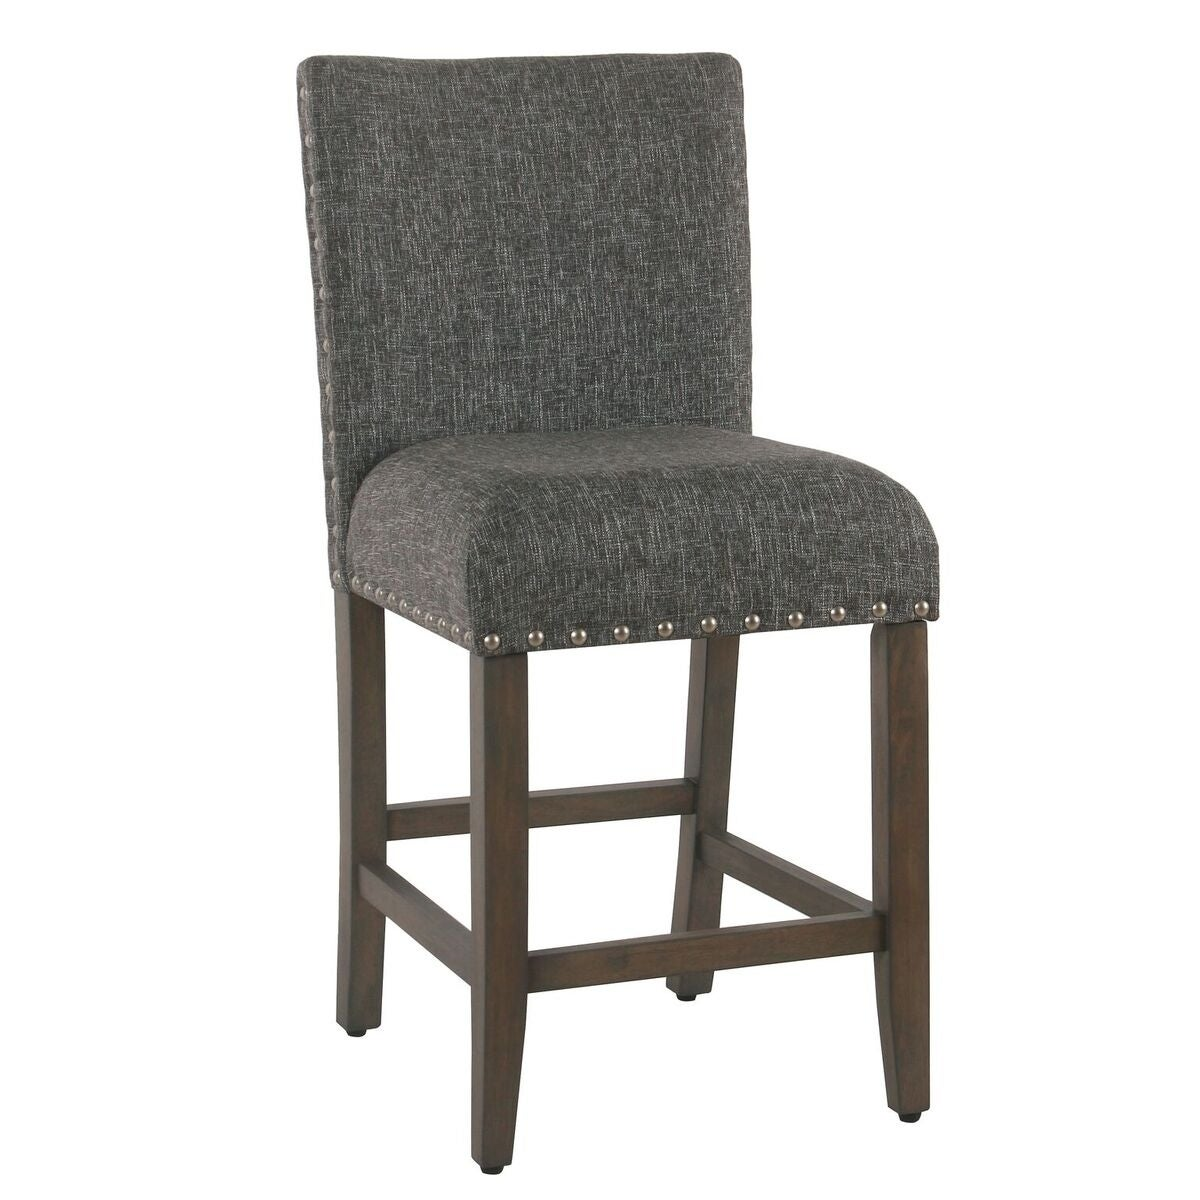 Awe Inspiring Porch Den Robin Slate Grey Nailhead Counter Stool Andrewgaddart Wooden Chair Designs For Living Room Andrewgaddartcom